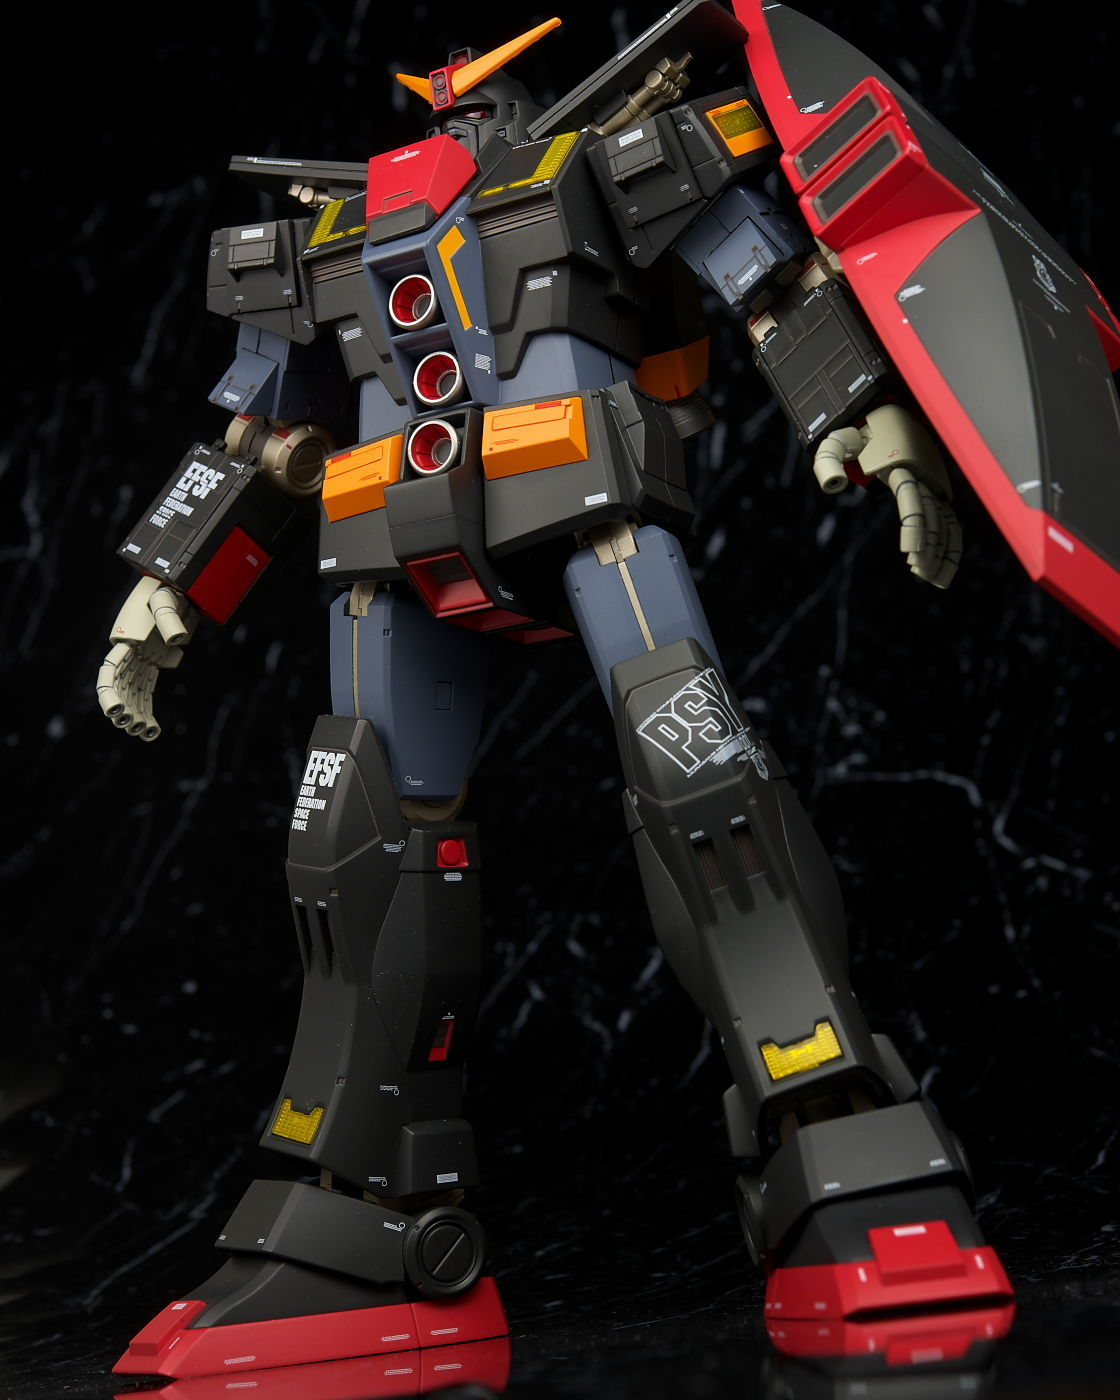 gunjap:  GFF #1002 Metal Composite MRX-009 Psycho Gundam: Full Photoreview No.42 Wallpaper Size Imageshttp://www.gunjap.net/site/?p=132797